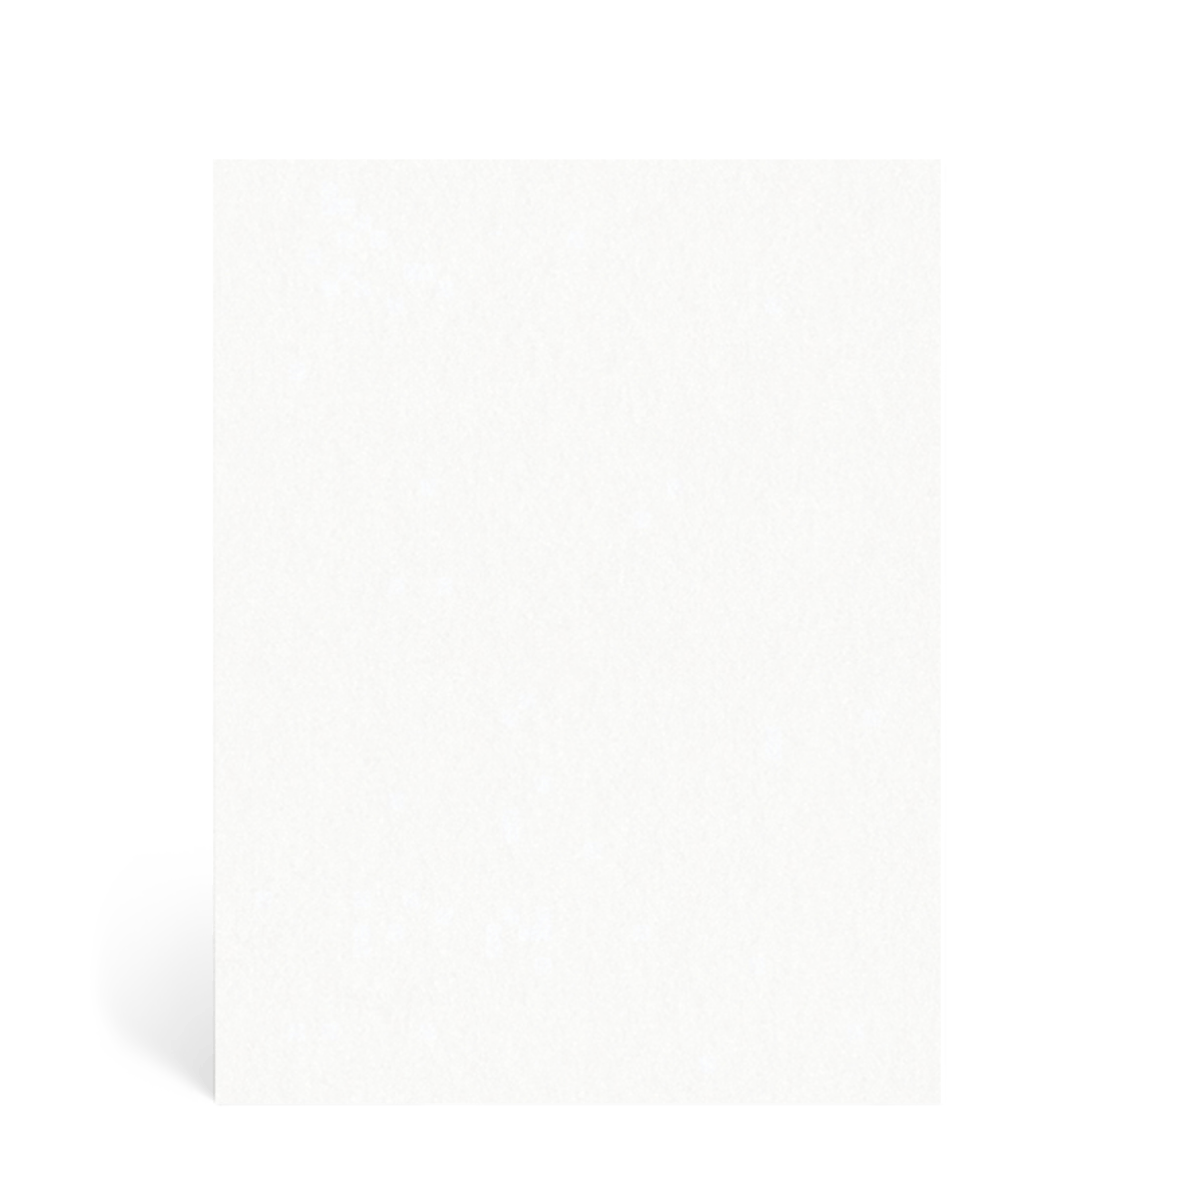 Https%3a%2f%2fwww.papier.com%2fproduct image%2f60365%2f31%2fthe minimalist 14444 back 1545923470.png?ixlib=rb 1.1